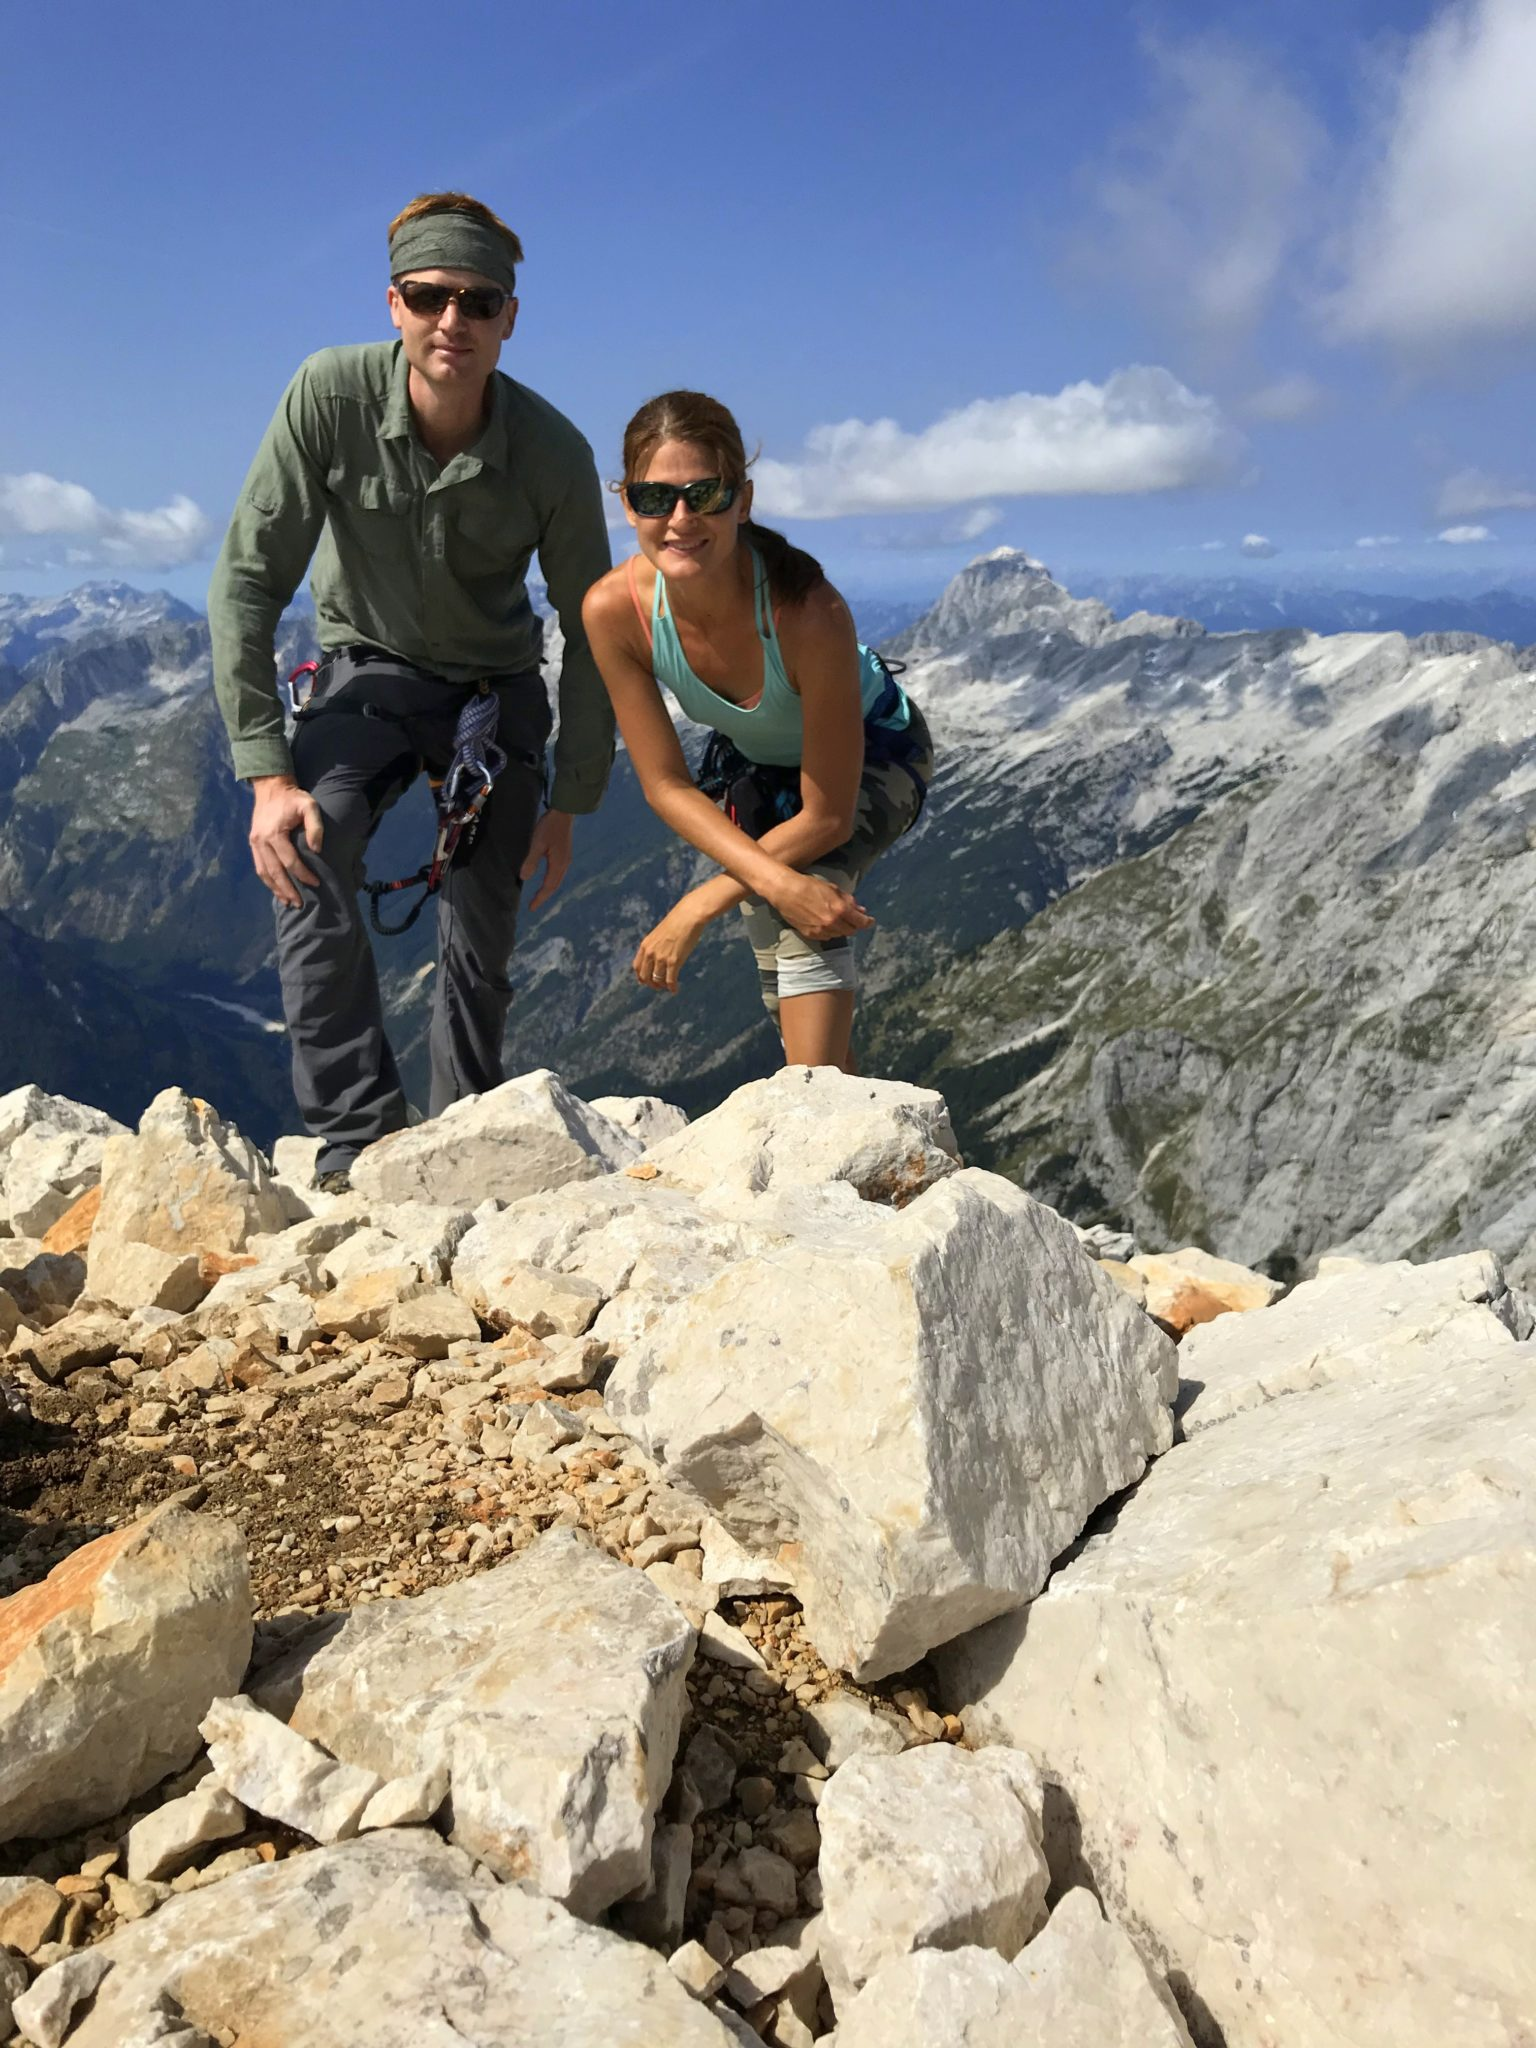 At the top of Mt. Razor, Julian Alps, Slovenia